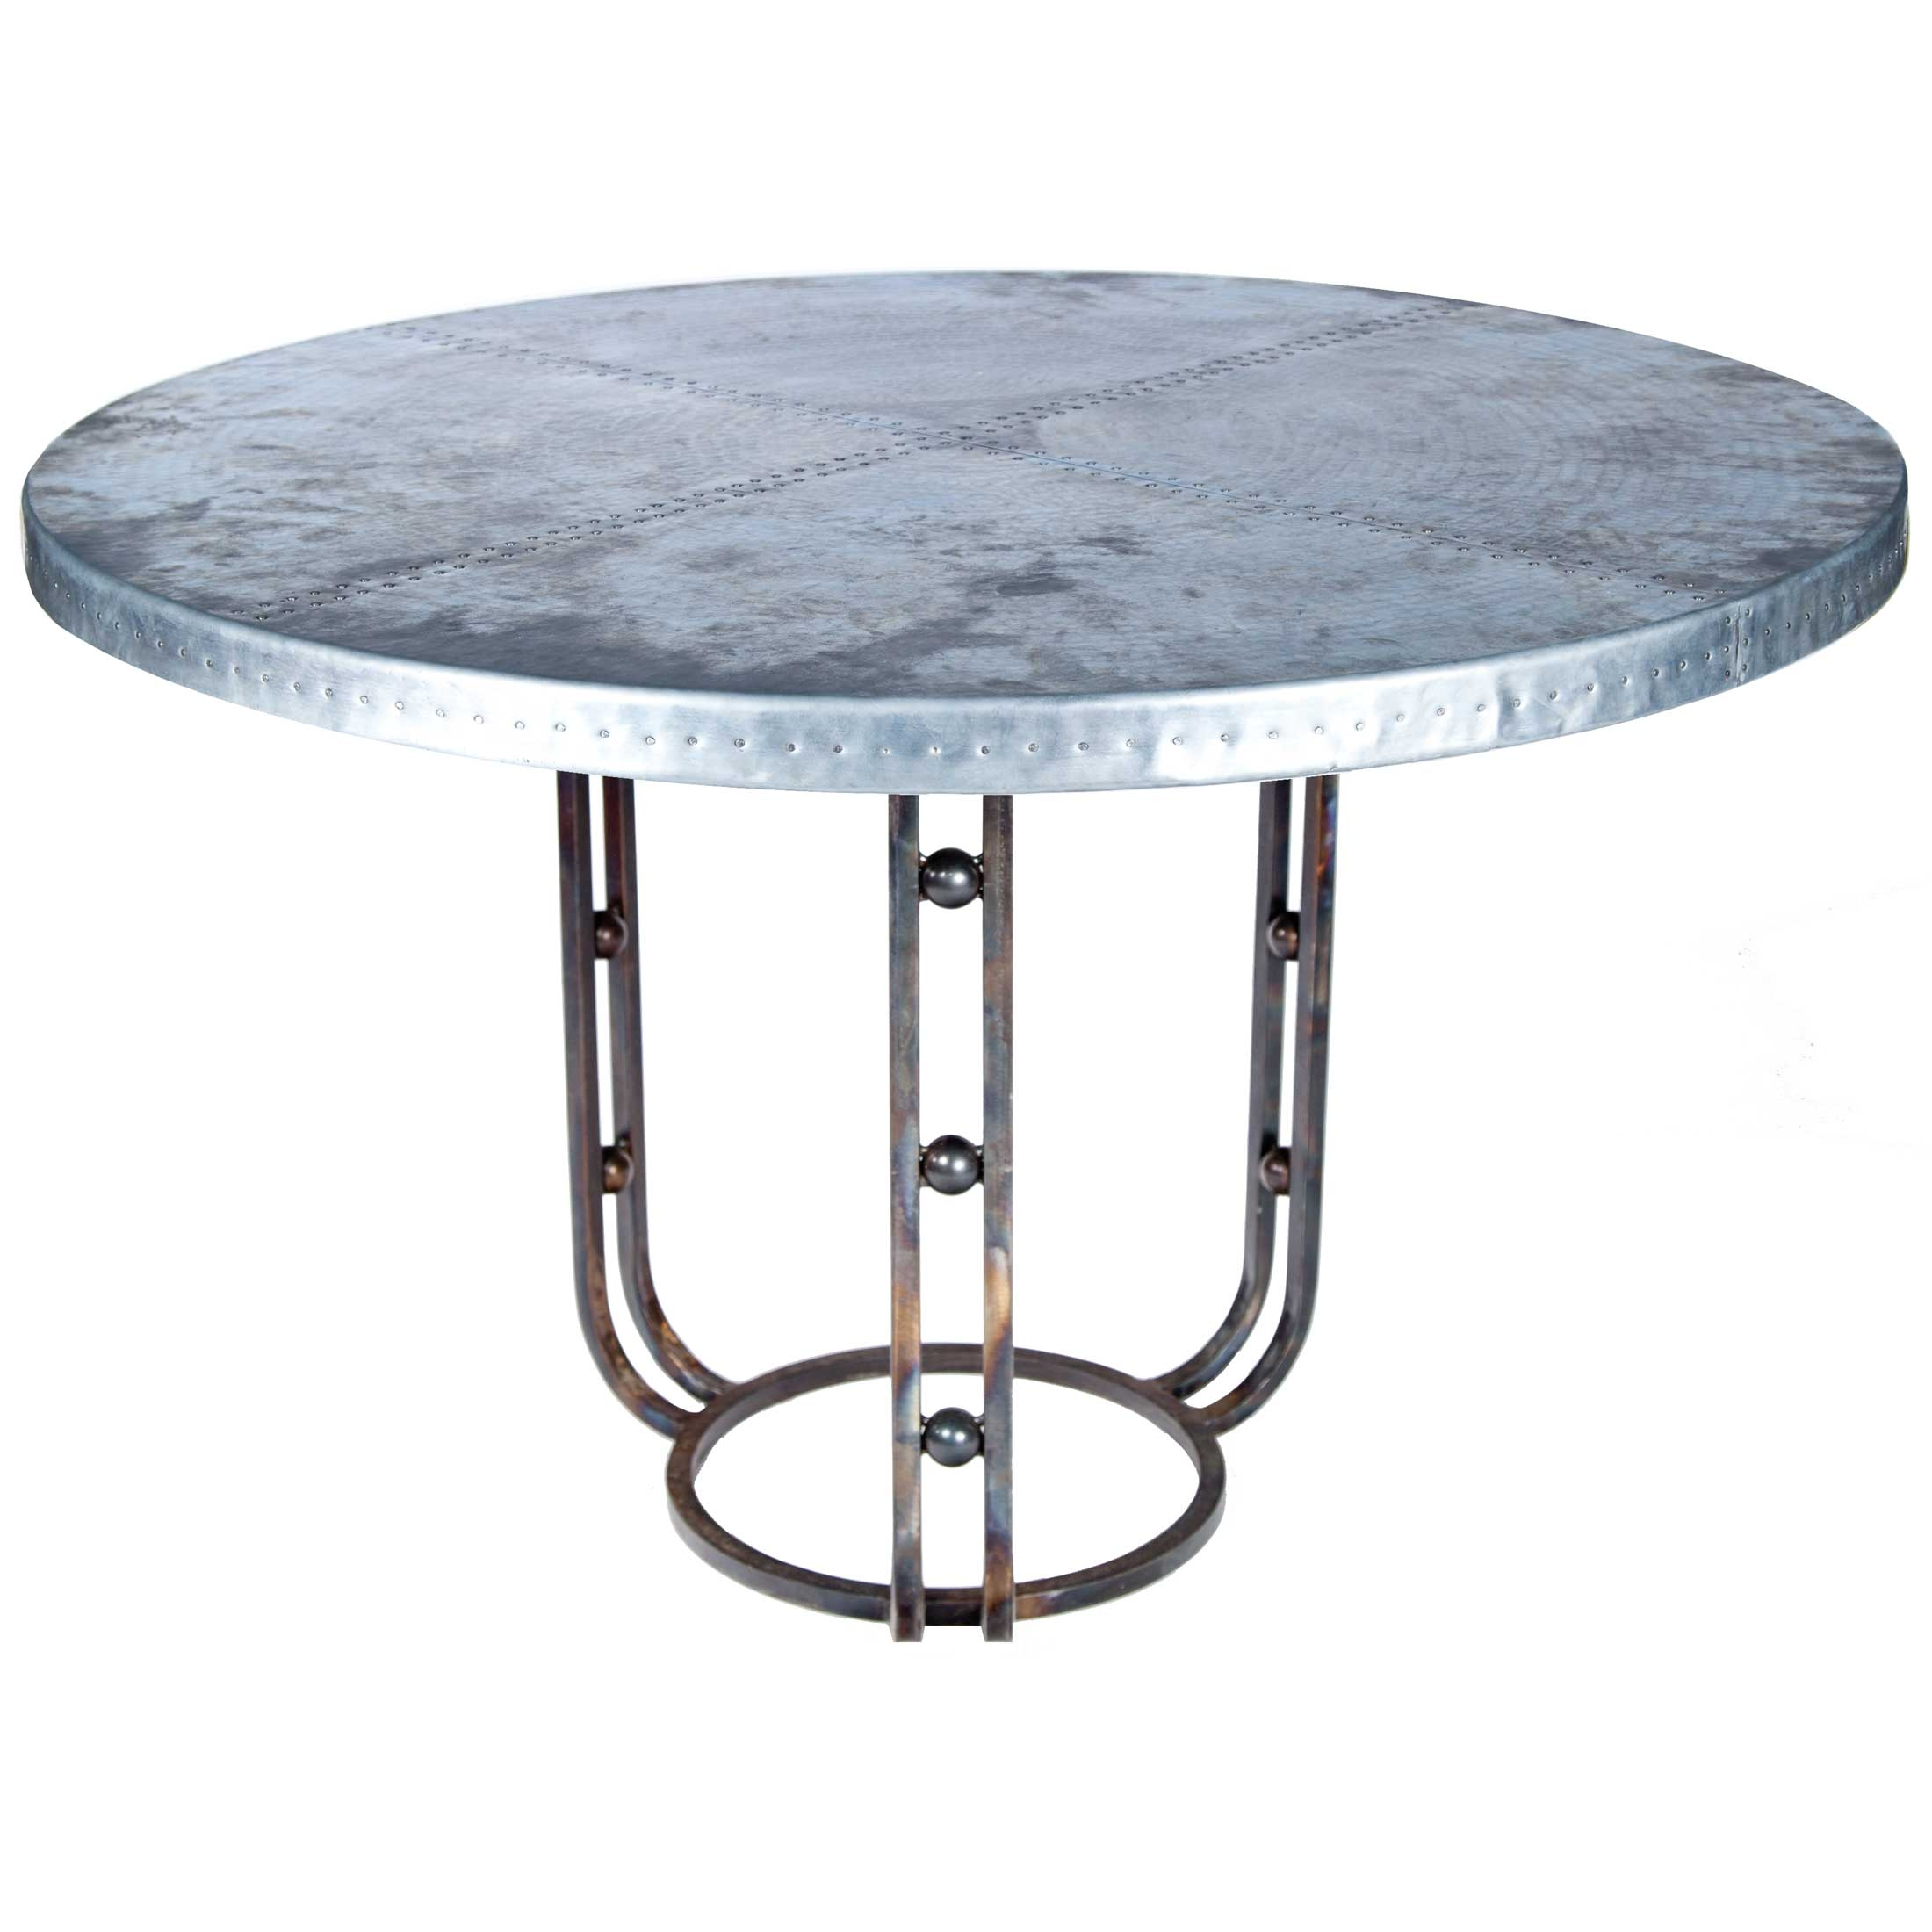 Clayton Iron Dining Table with 54 Round Hammered Zinc Top